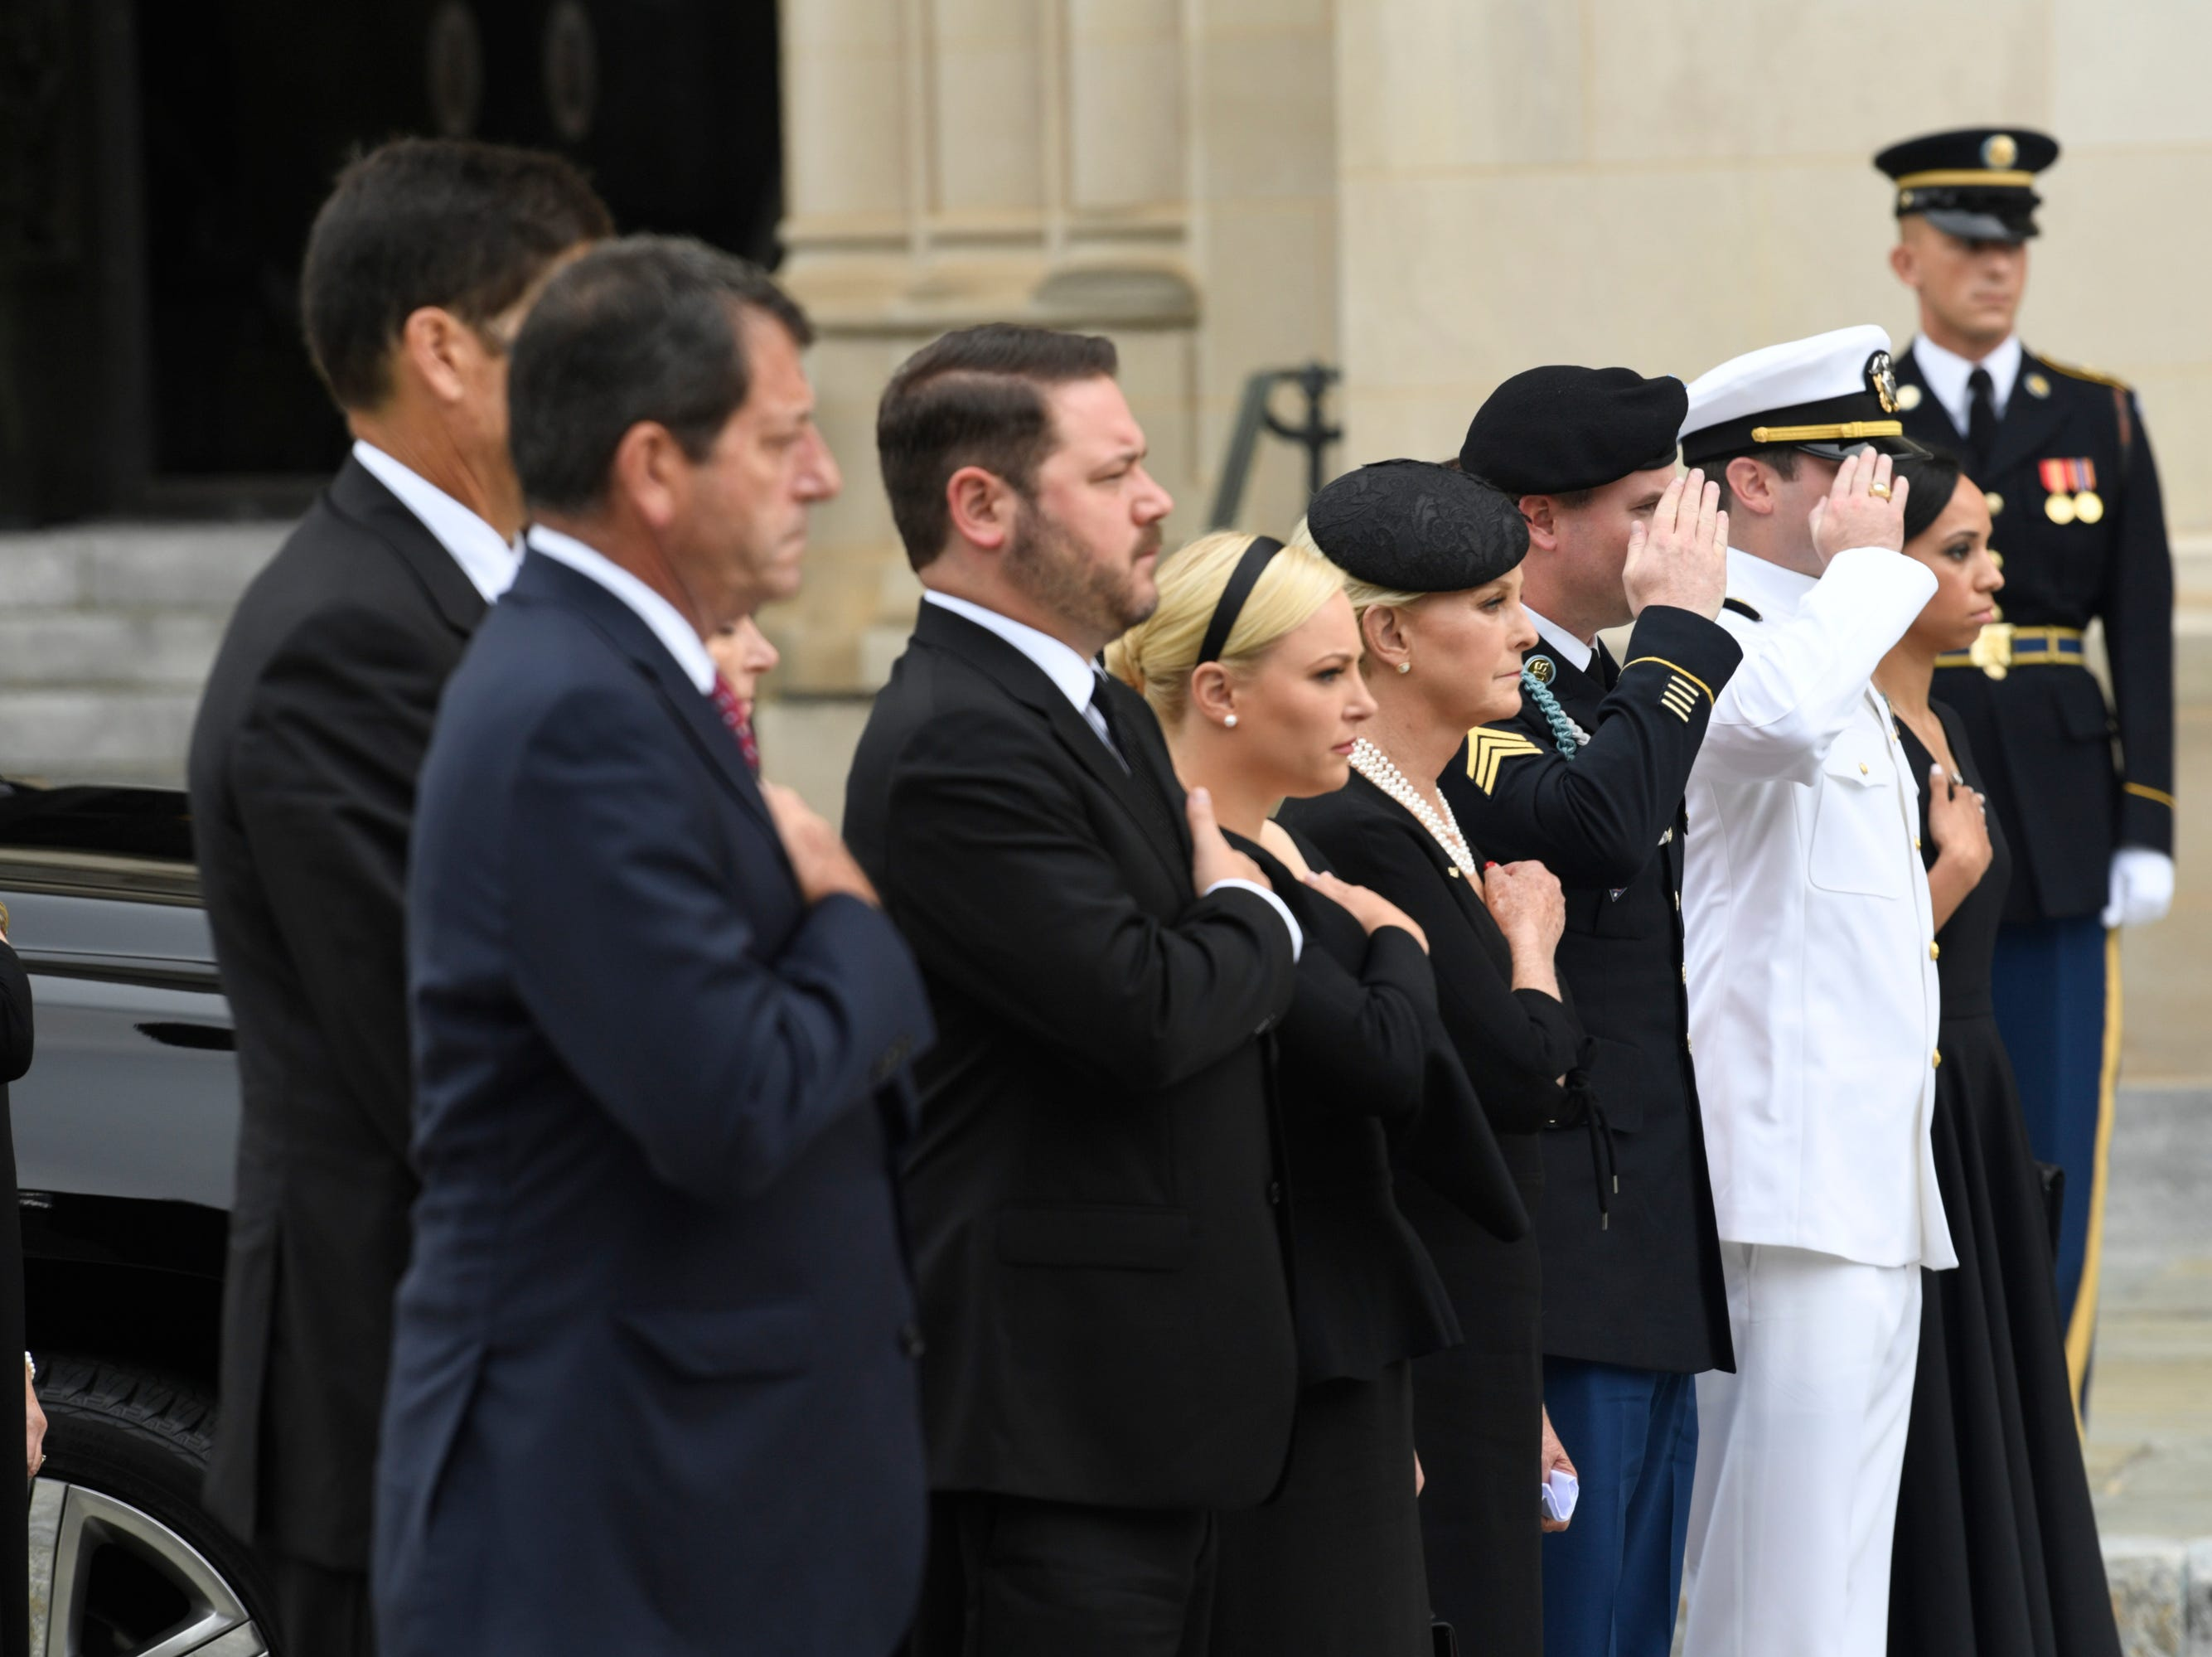 9/1/18 9:43:00 AM -- Washington, DC, U.S.A  -- Members of the McCain family leave the memorial service for John McCain at the National Cathedral in Washington on Sept. 1, 2018. --    Photo by Jasper Colt, USA TODAY Staff